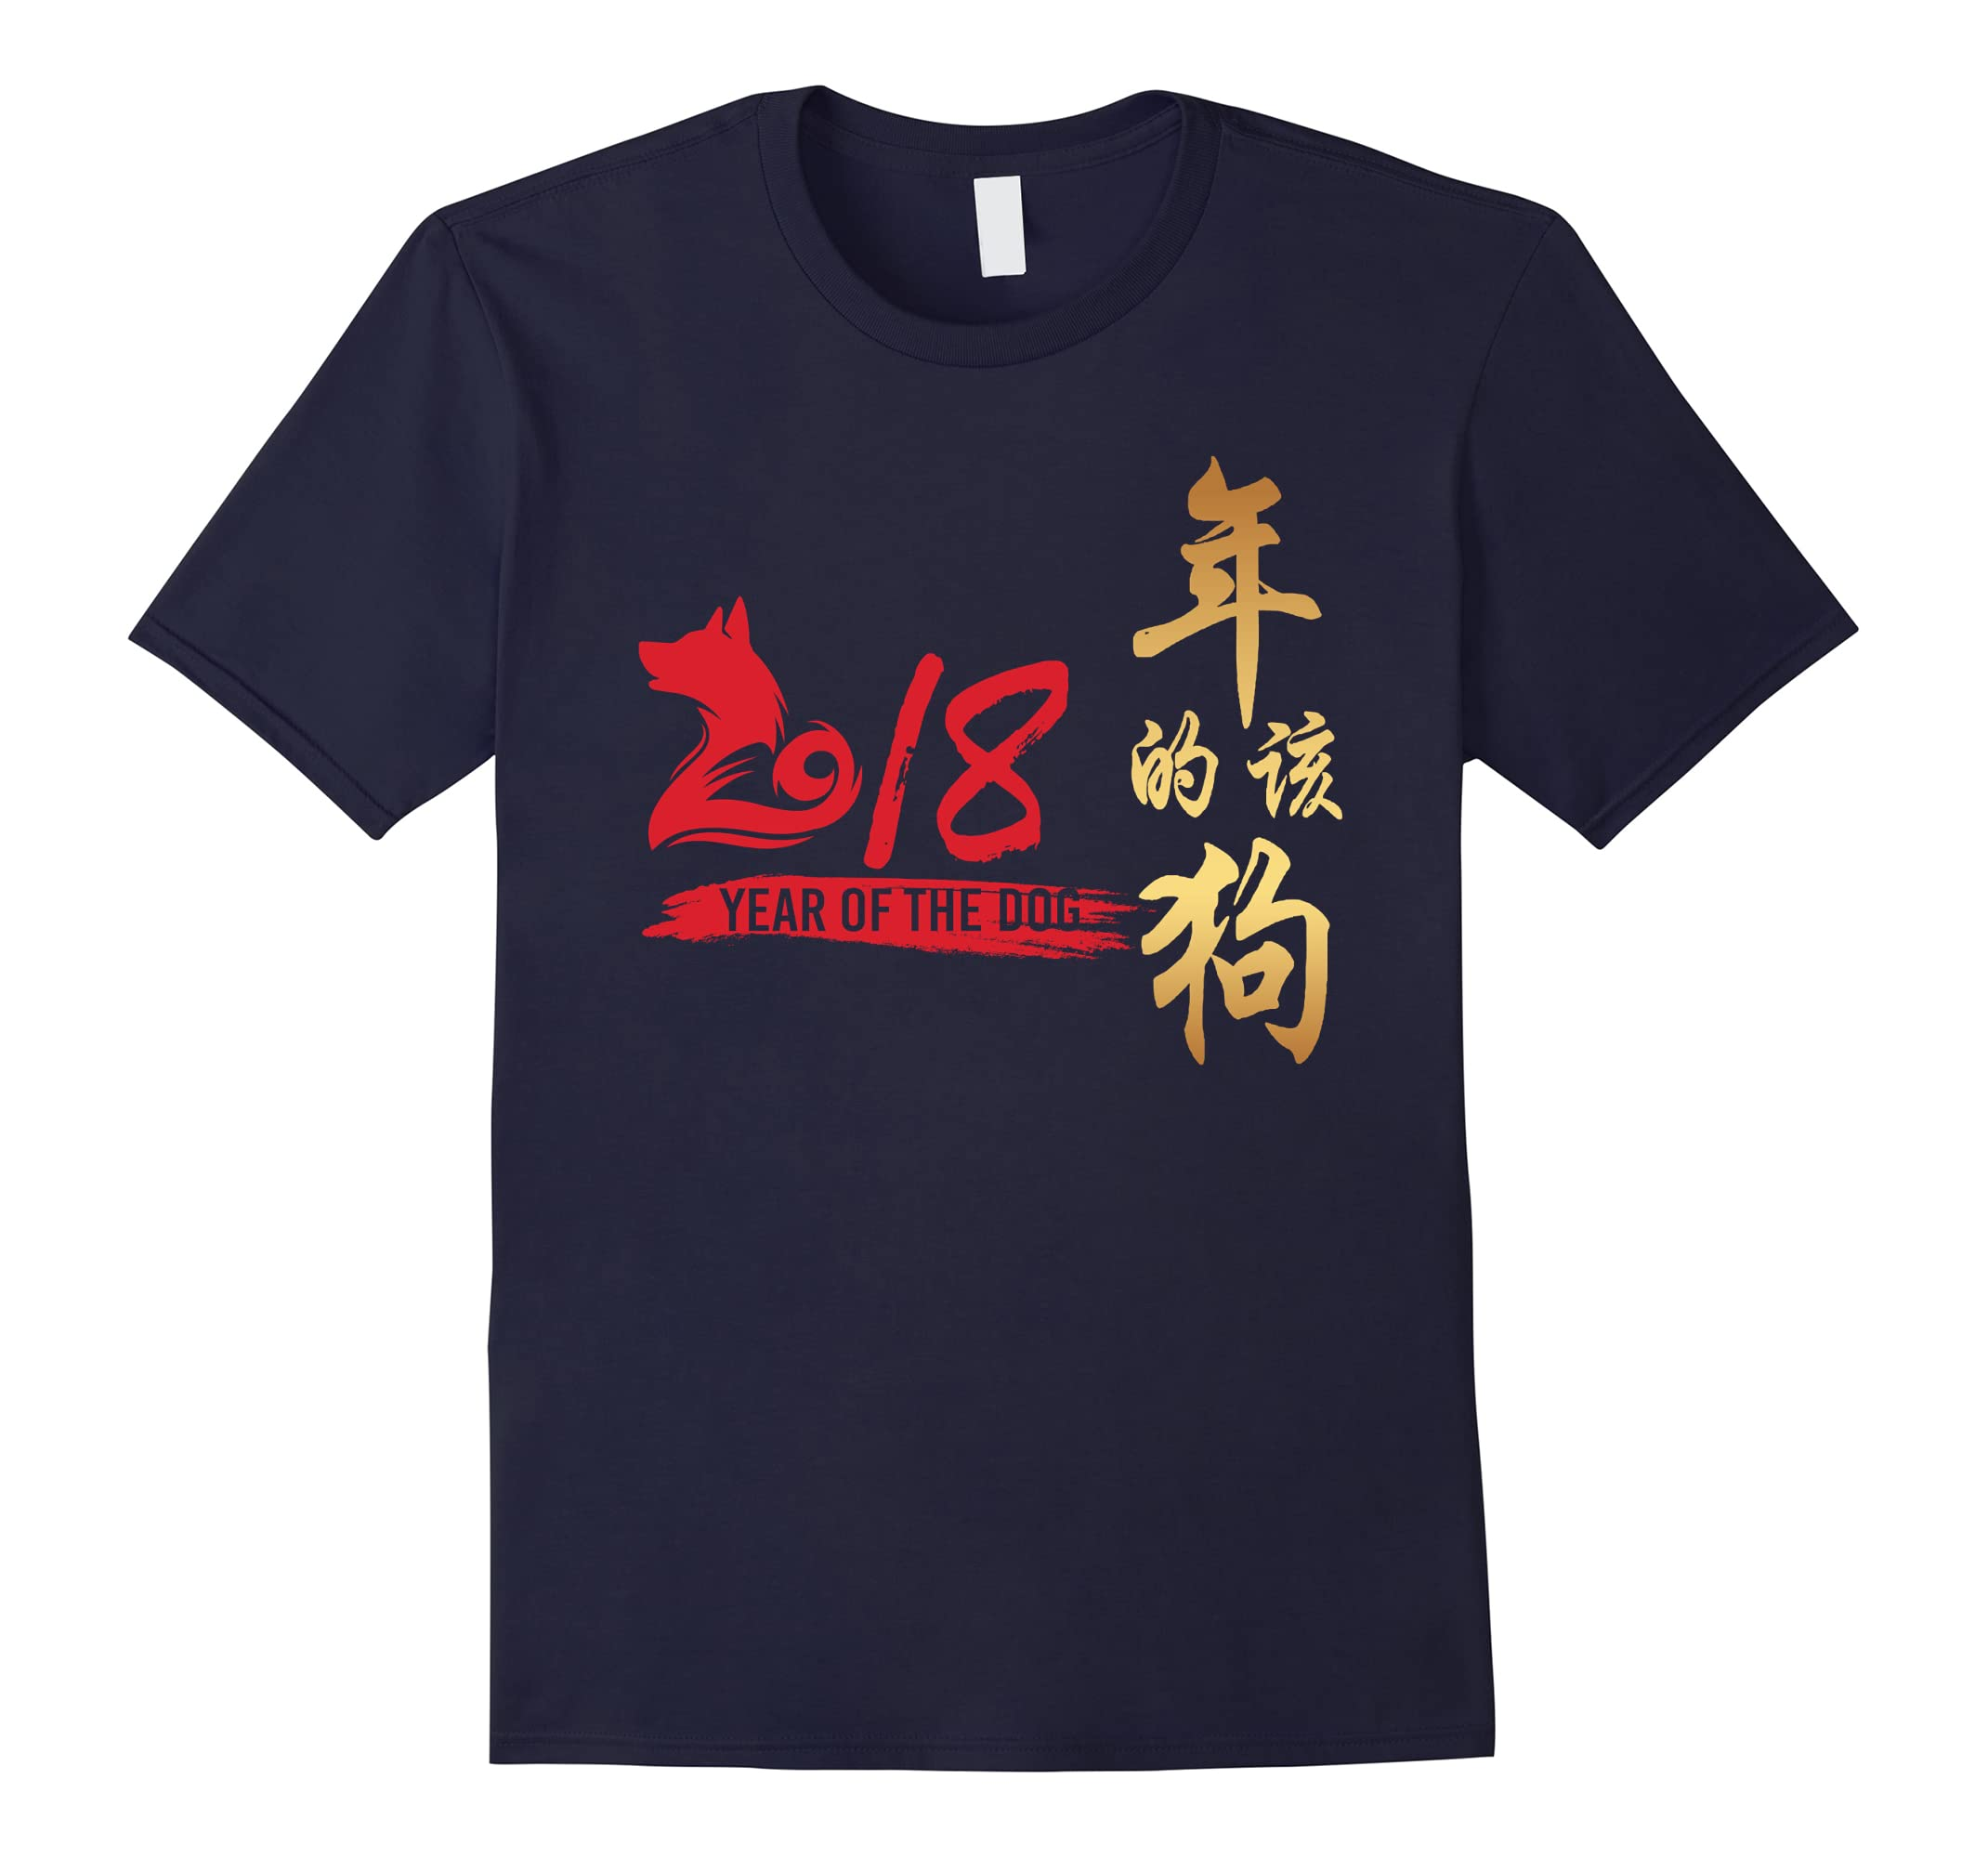 'Year of Dog 2018' Great Chinese New Year Dog Shirt-ah my shirt one gift